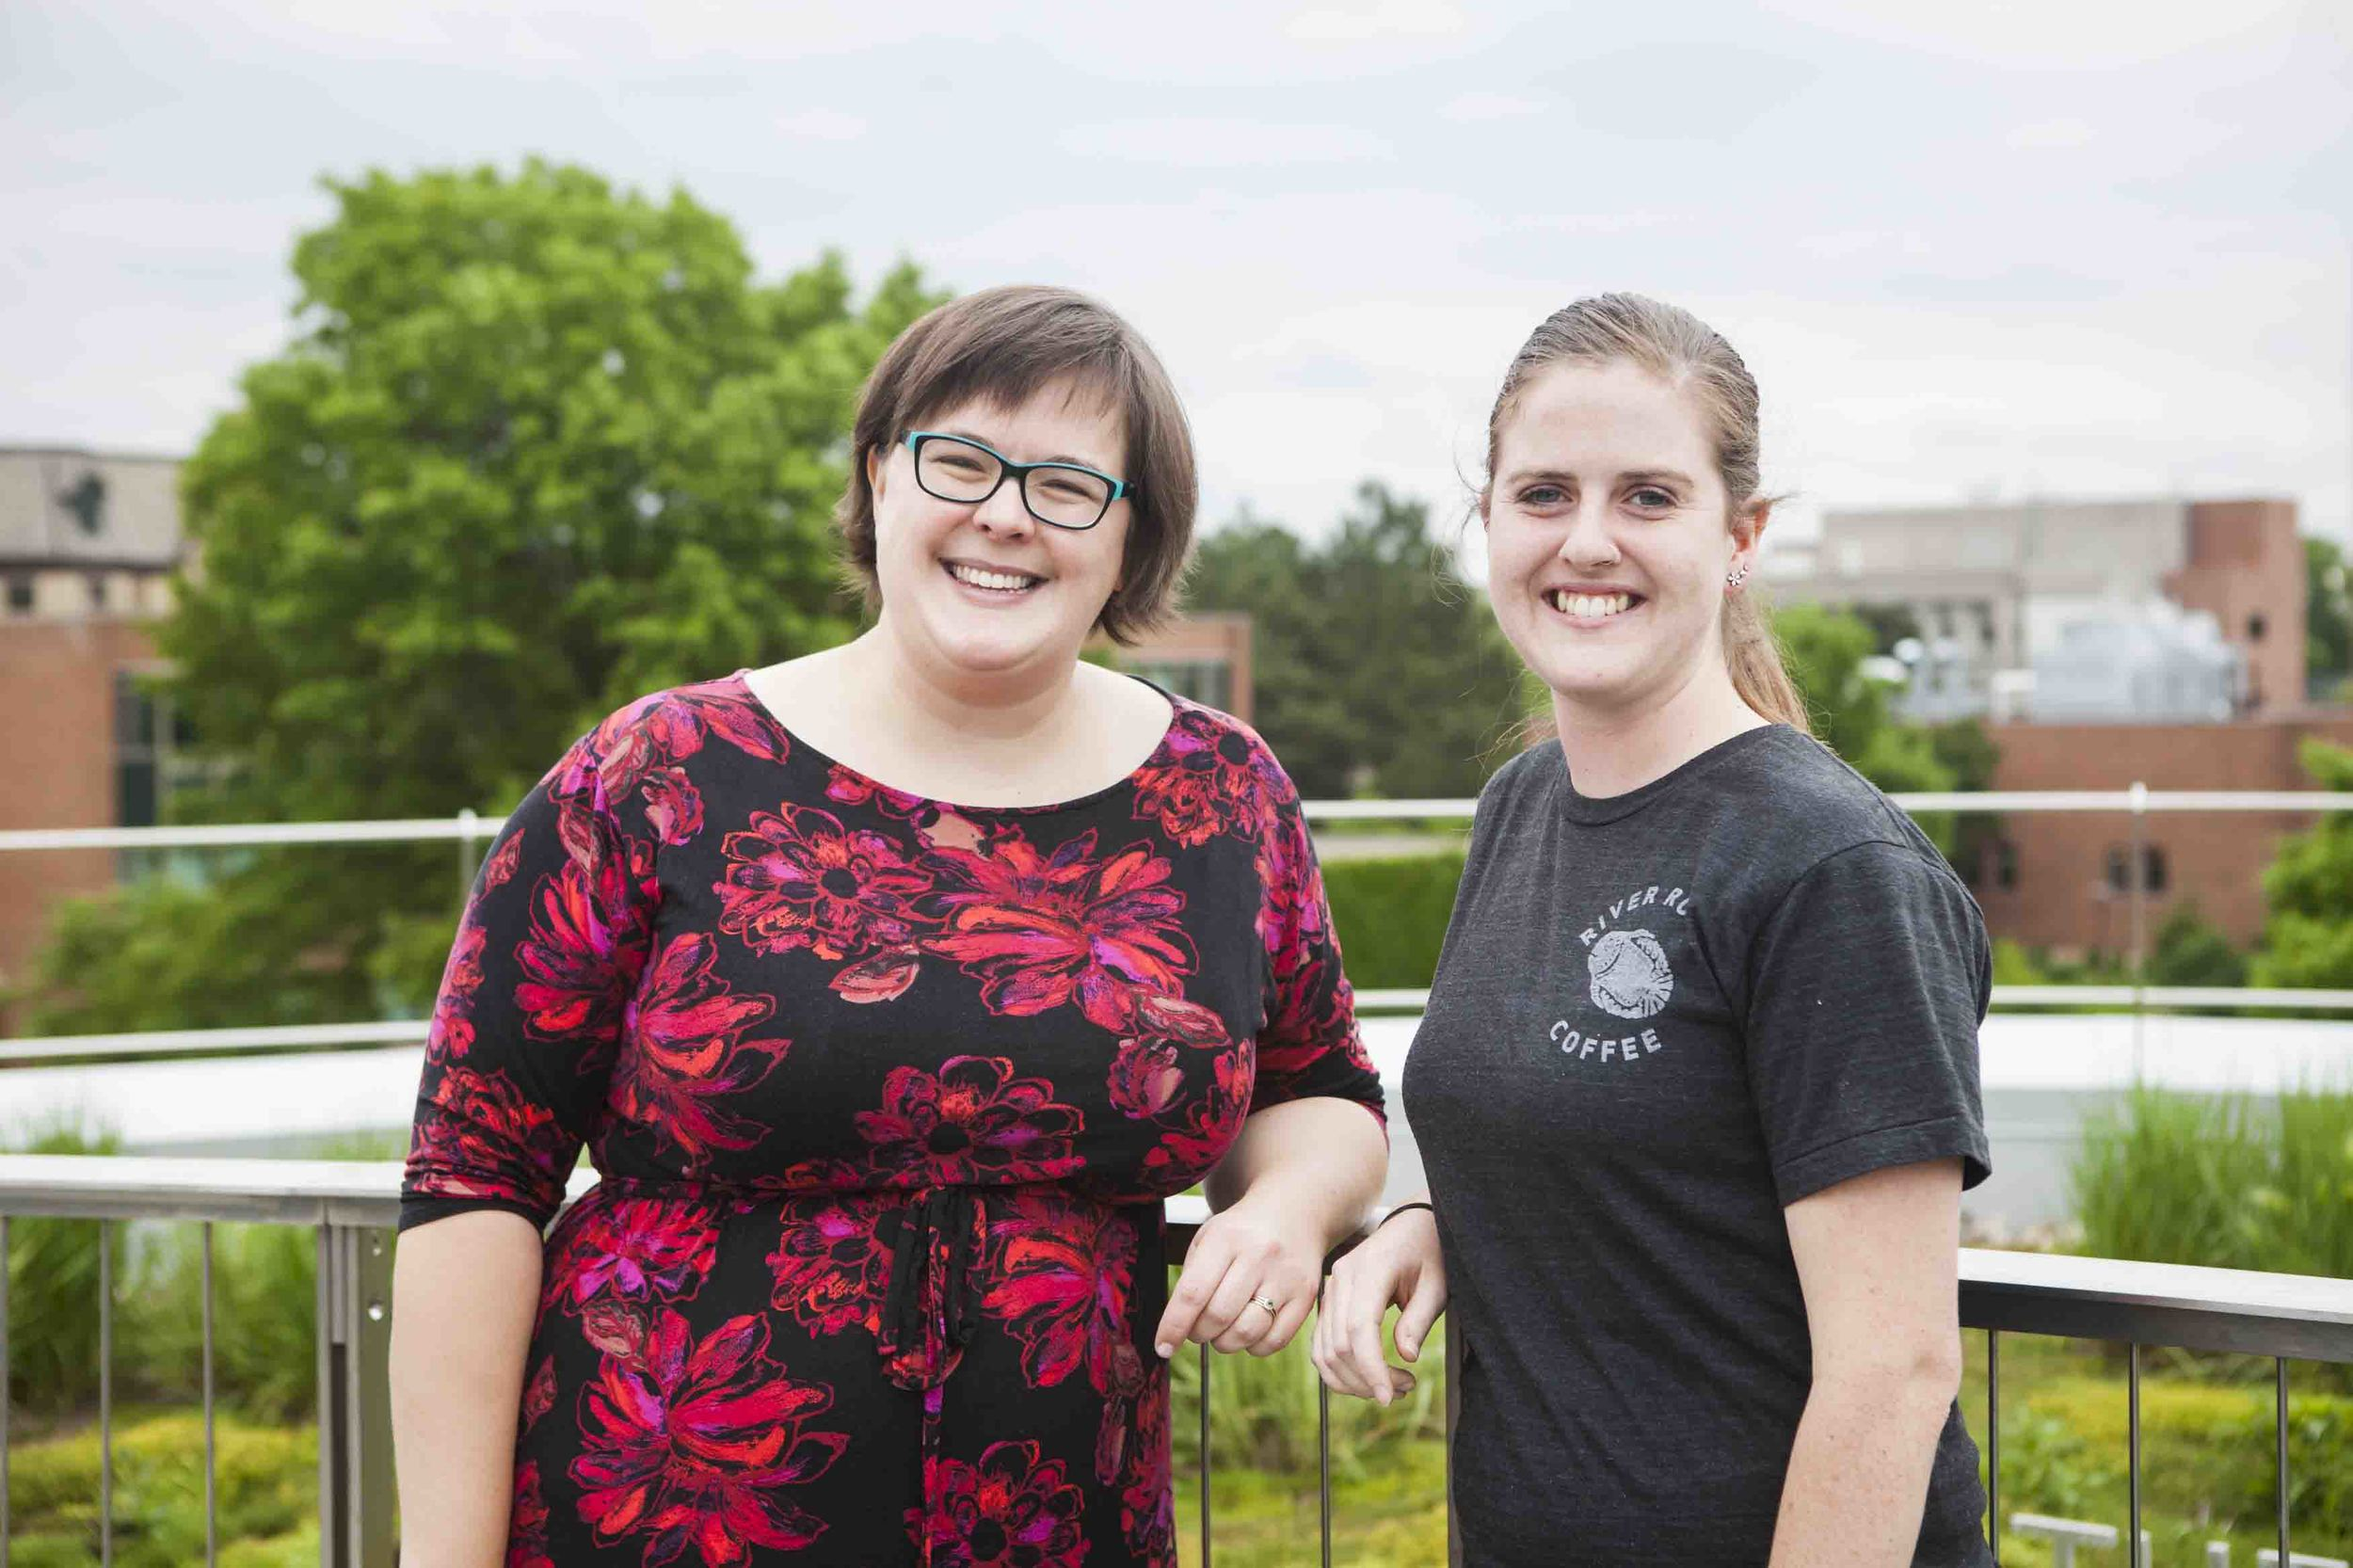 Kari Louwagie (right) pictured with her mentor Katie Matson-Daley (left).